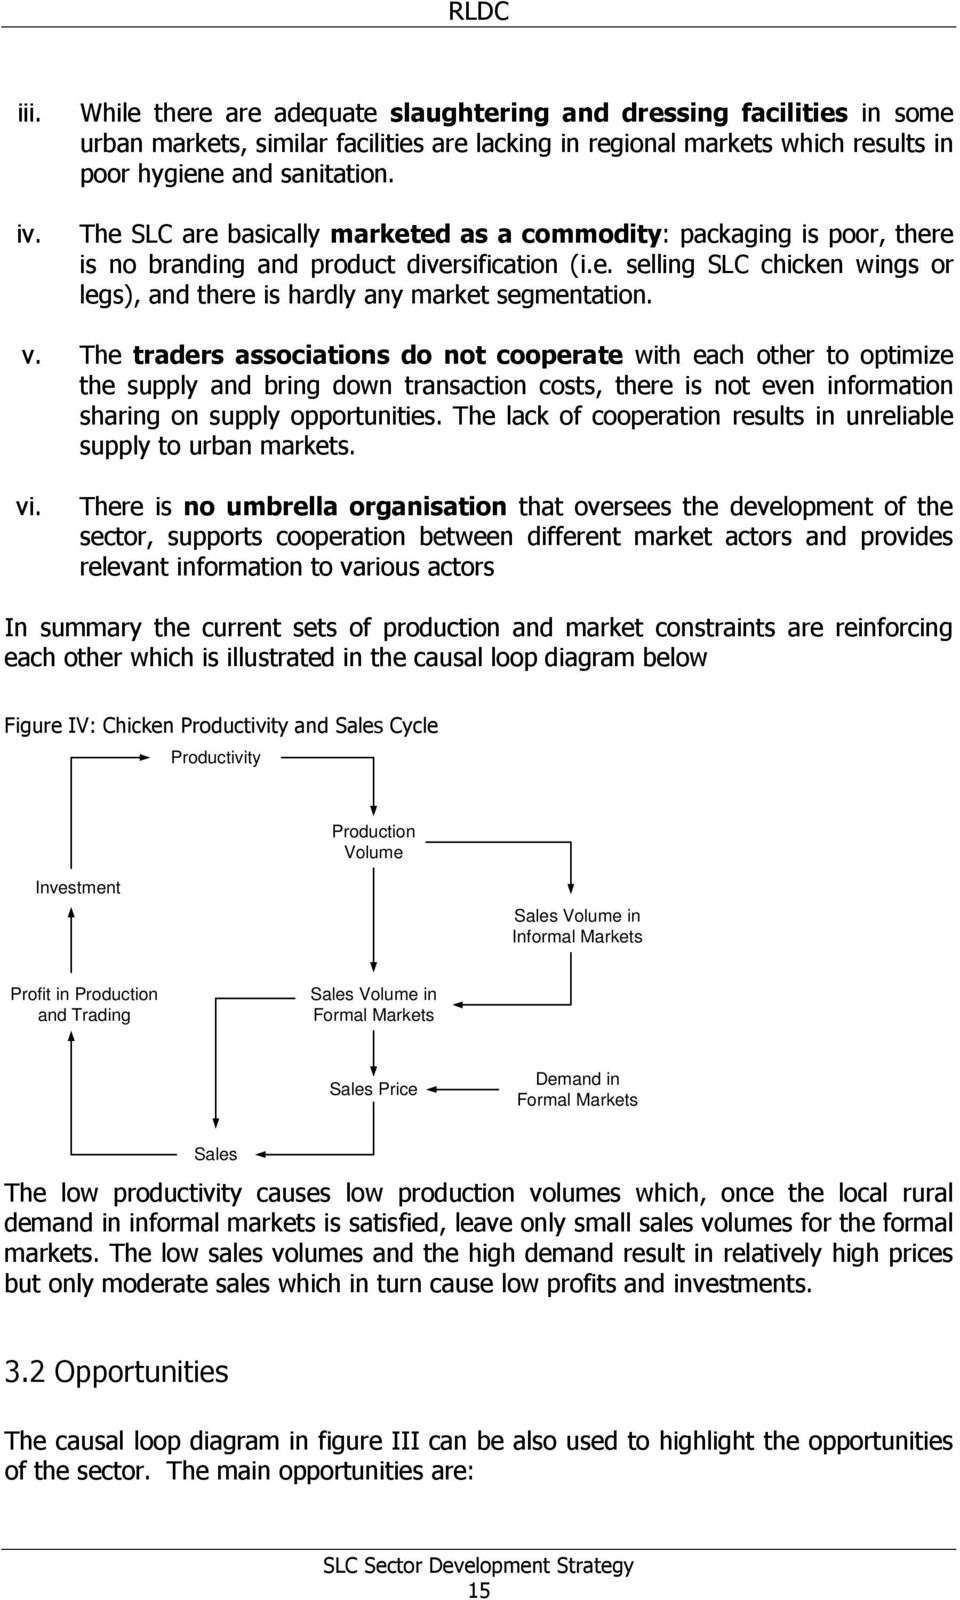 v. The traders associations do not cooperate with each other to optimize the supply and bring down transaction costs, there is not even information sharing on supply opportunities.